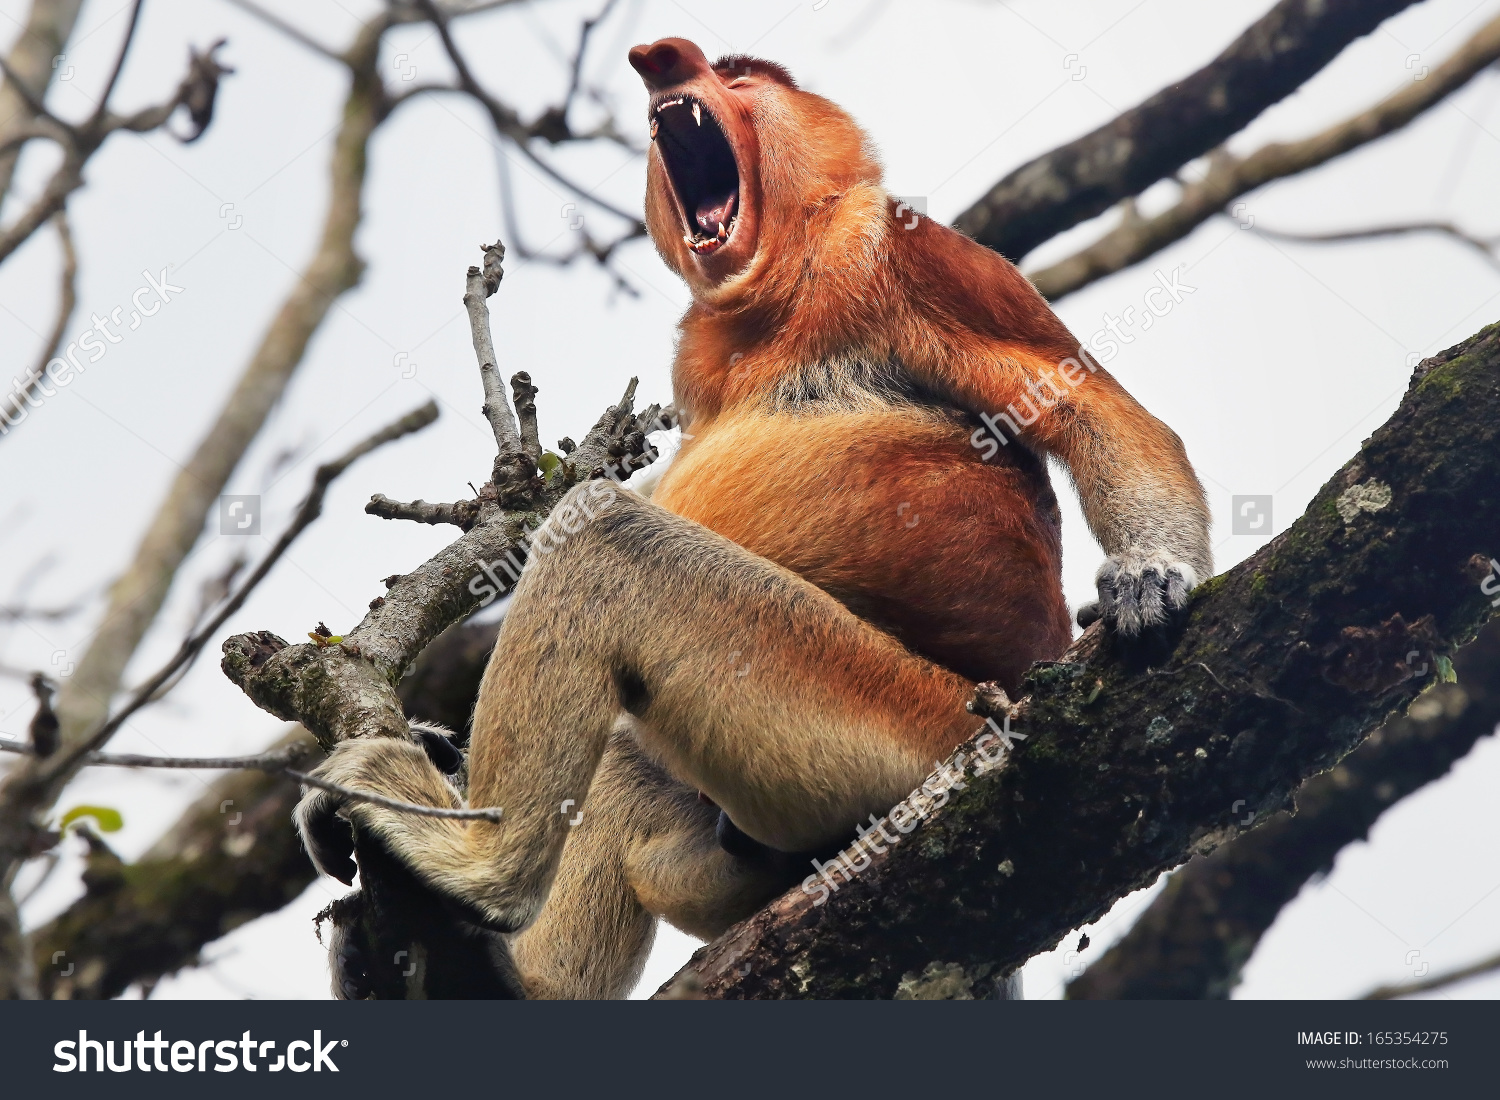 Endangered Proboscis Monkey Nasalis Larvatus Sitting Stock Photo.